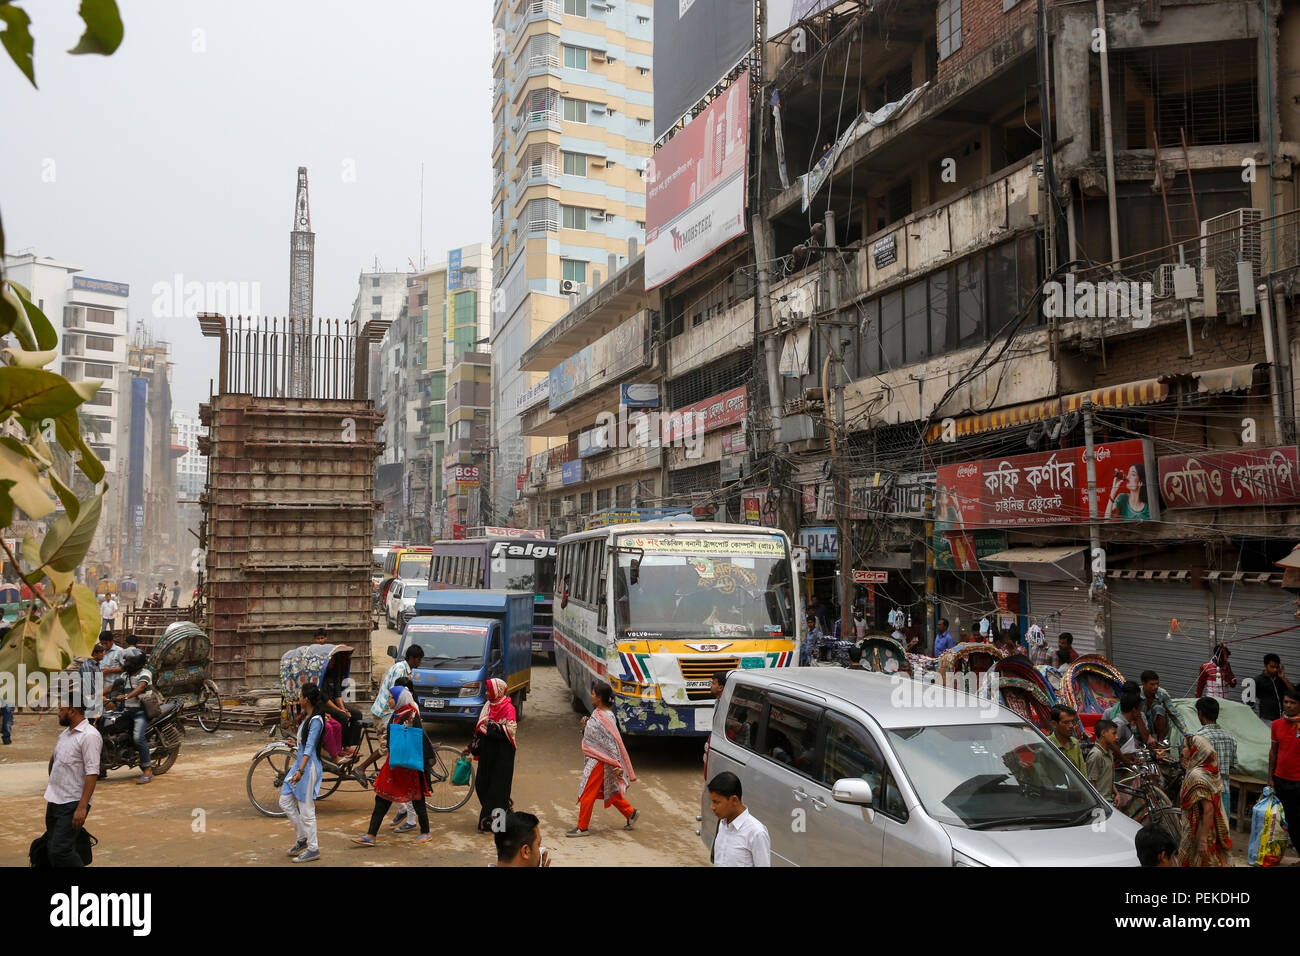 Construction work of Moghbazar-Mouchak flyover in Dhaka, Bangladesh - Stock Image